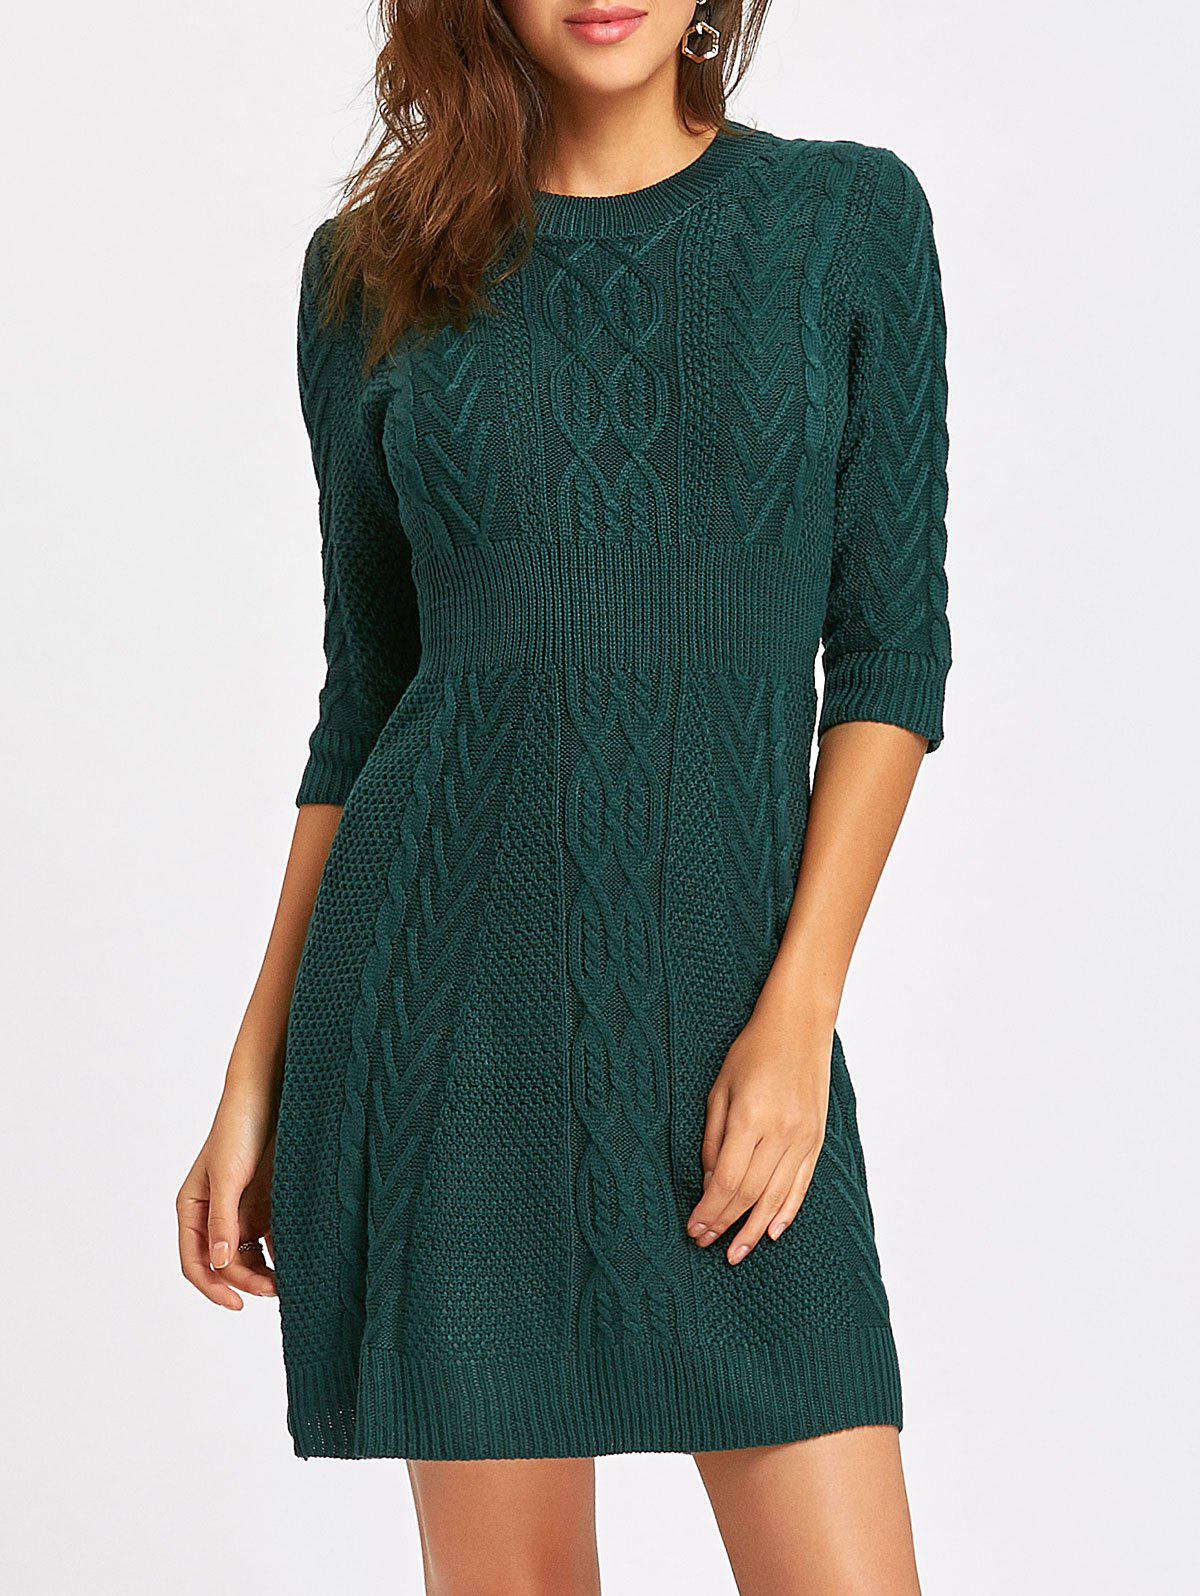 Crew Neck Cable Knitted Mini Dress - GREEN L